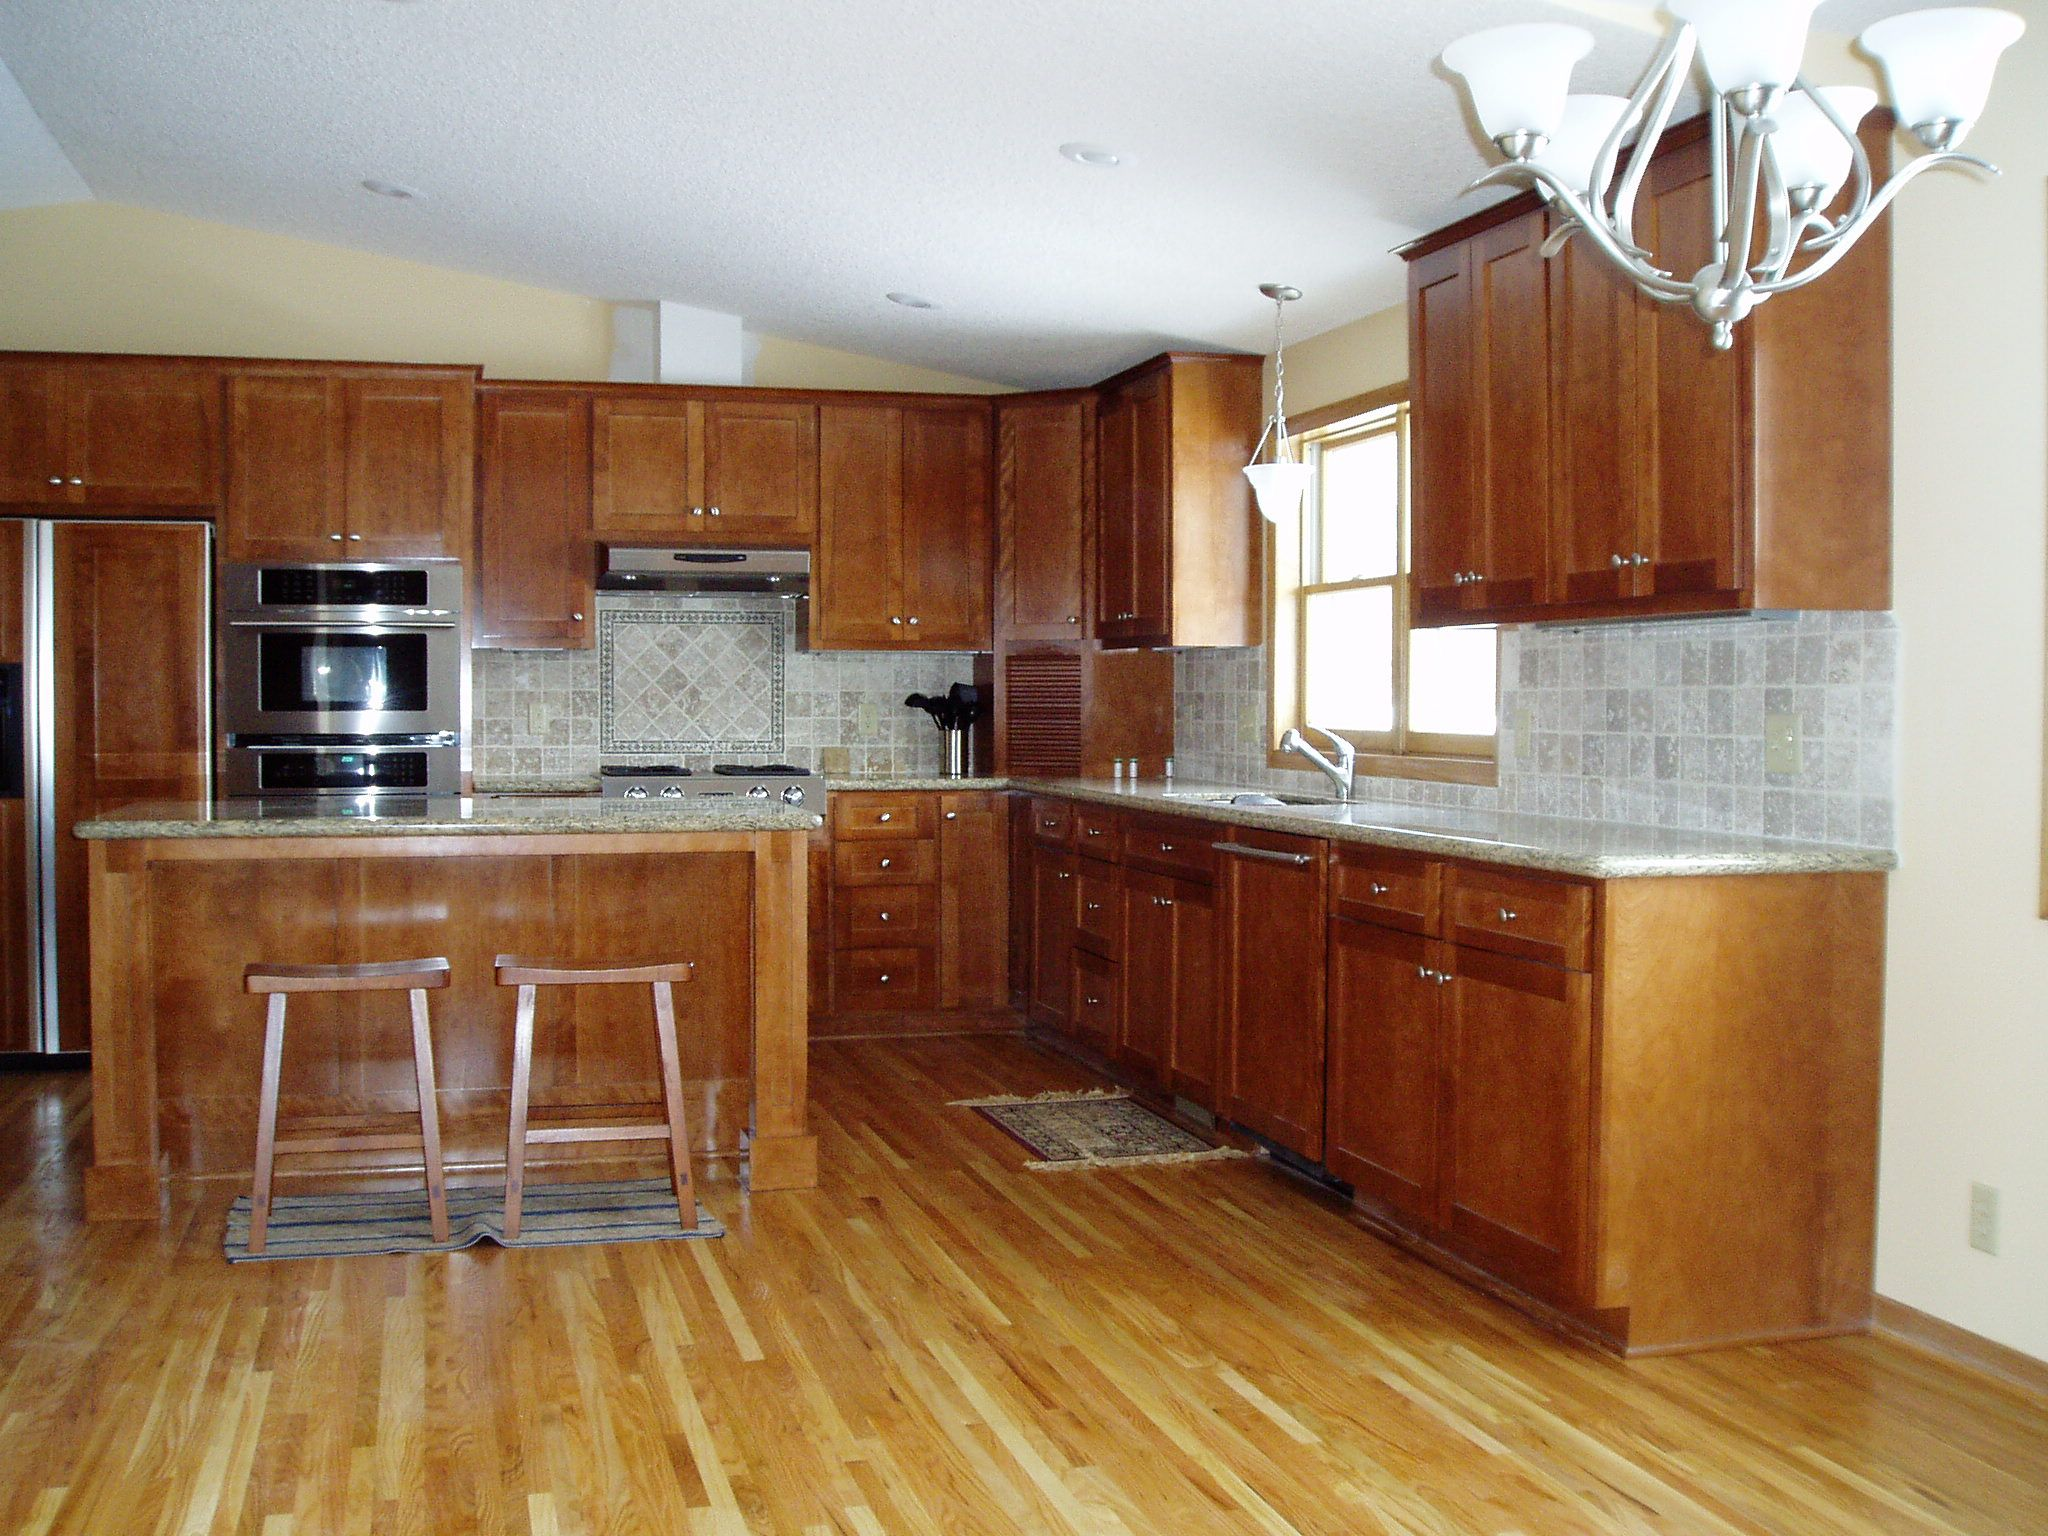 Wooden Kitchen Flooring Wood Flooring That Goes Well With Honey Oak Cabinets Dream Home